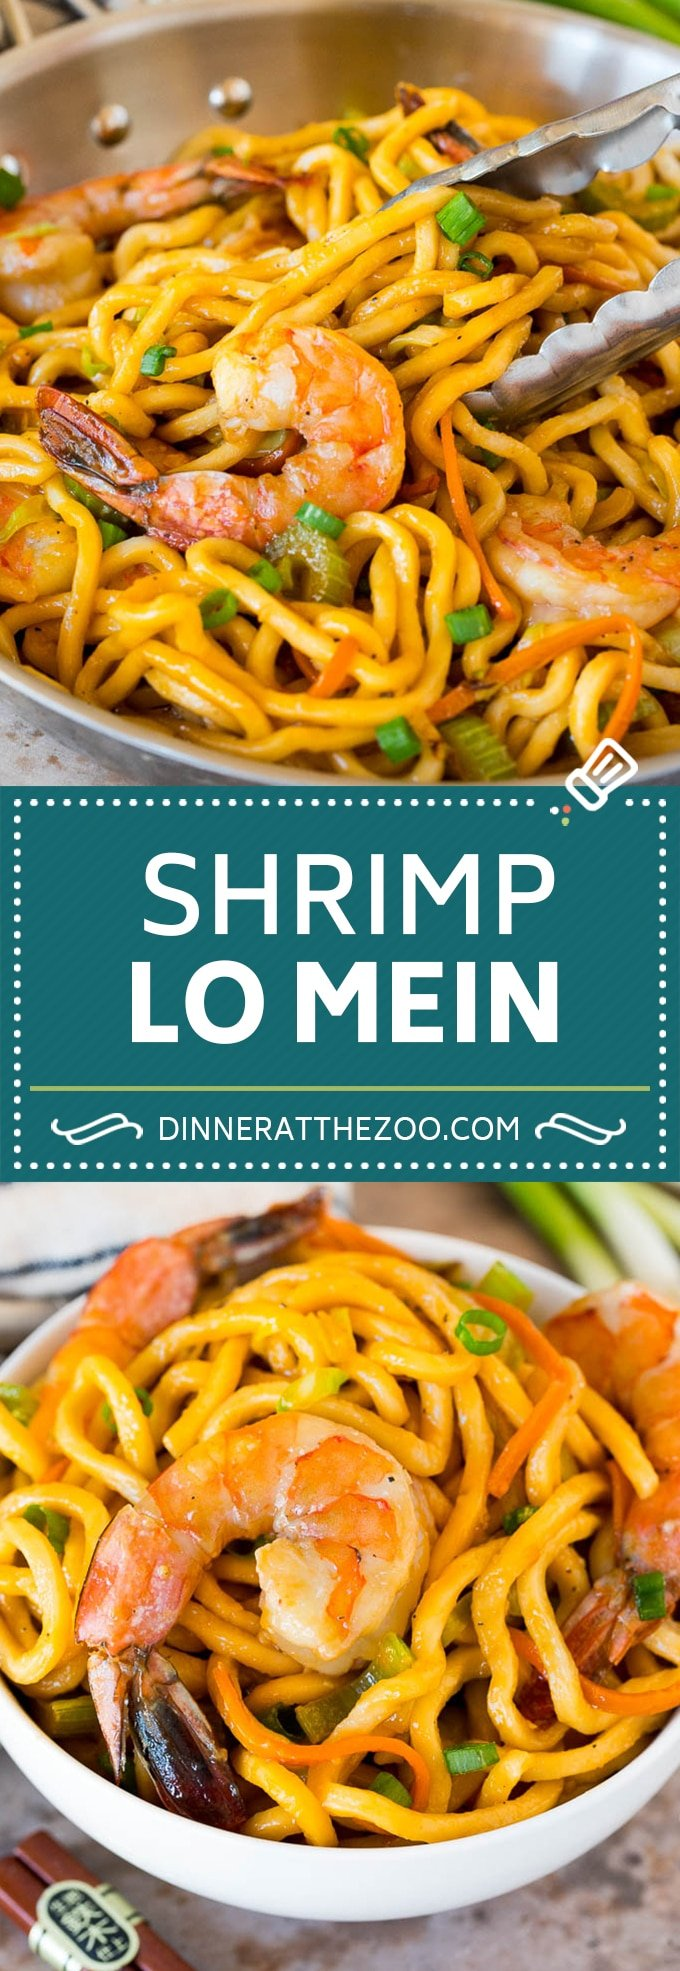 This shrimp lo mein is succulent shrimp with vegetables and egg noodles, all tossed together in a savory sauce.